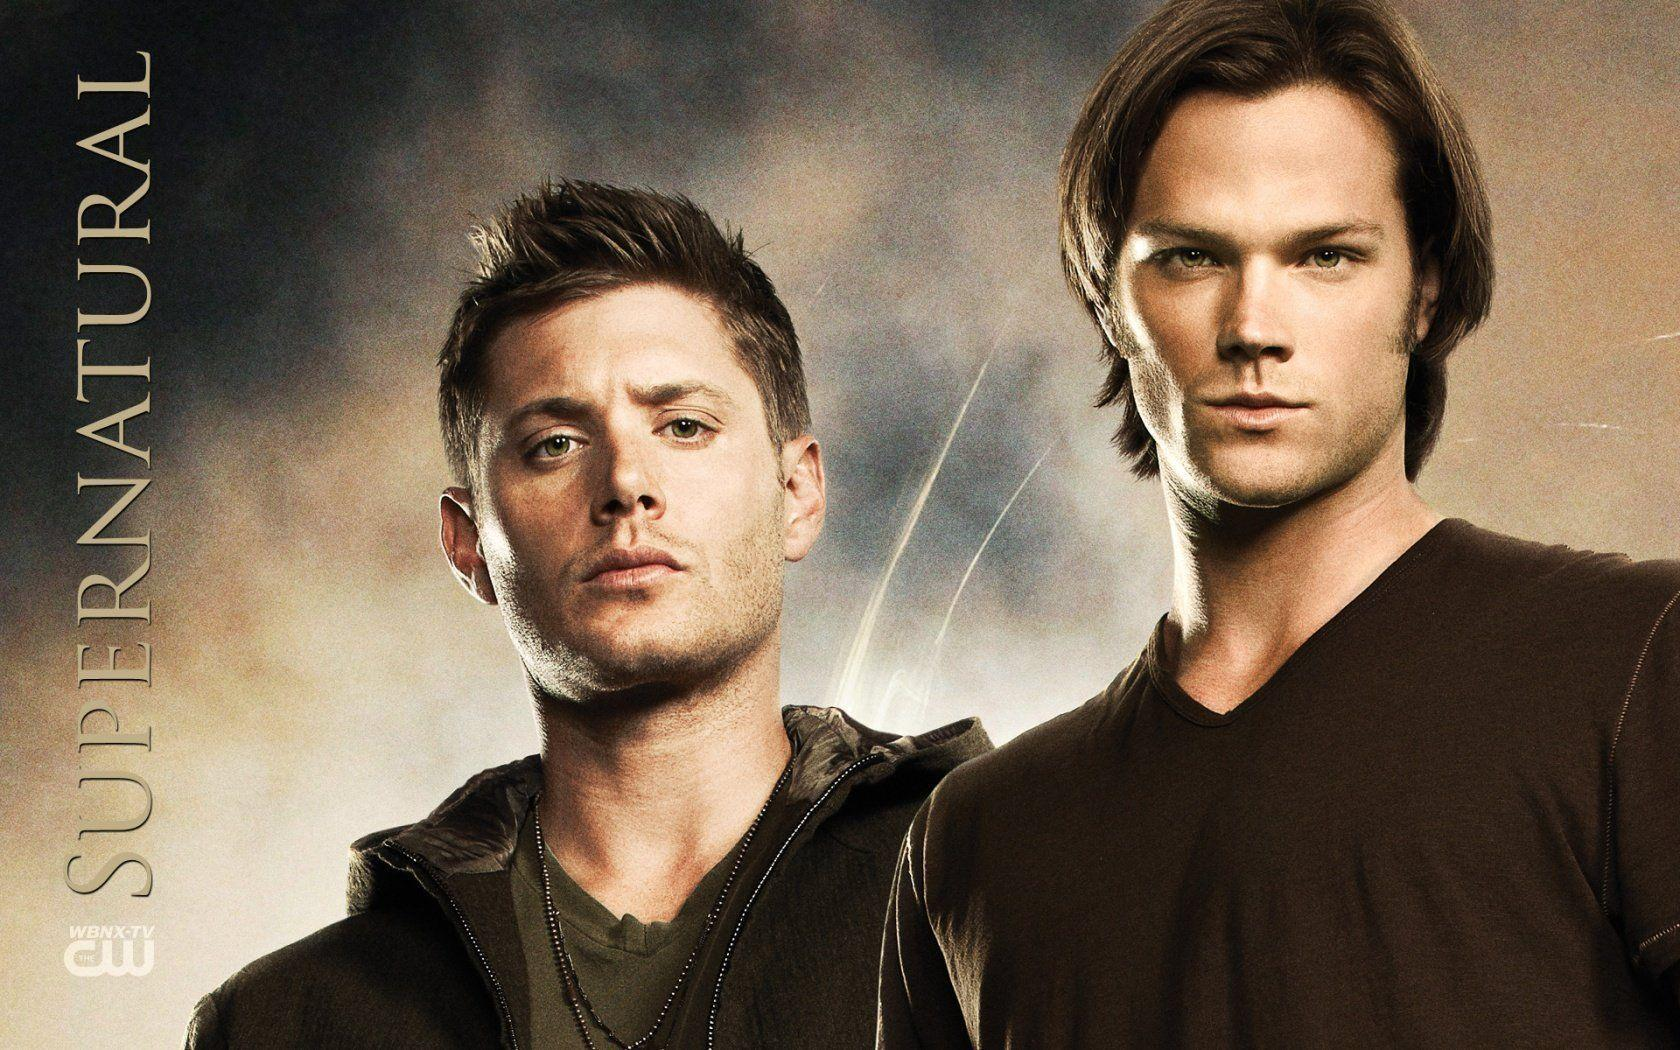 Supernatural season 11 premiere date in Melbourne